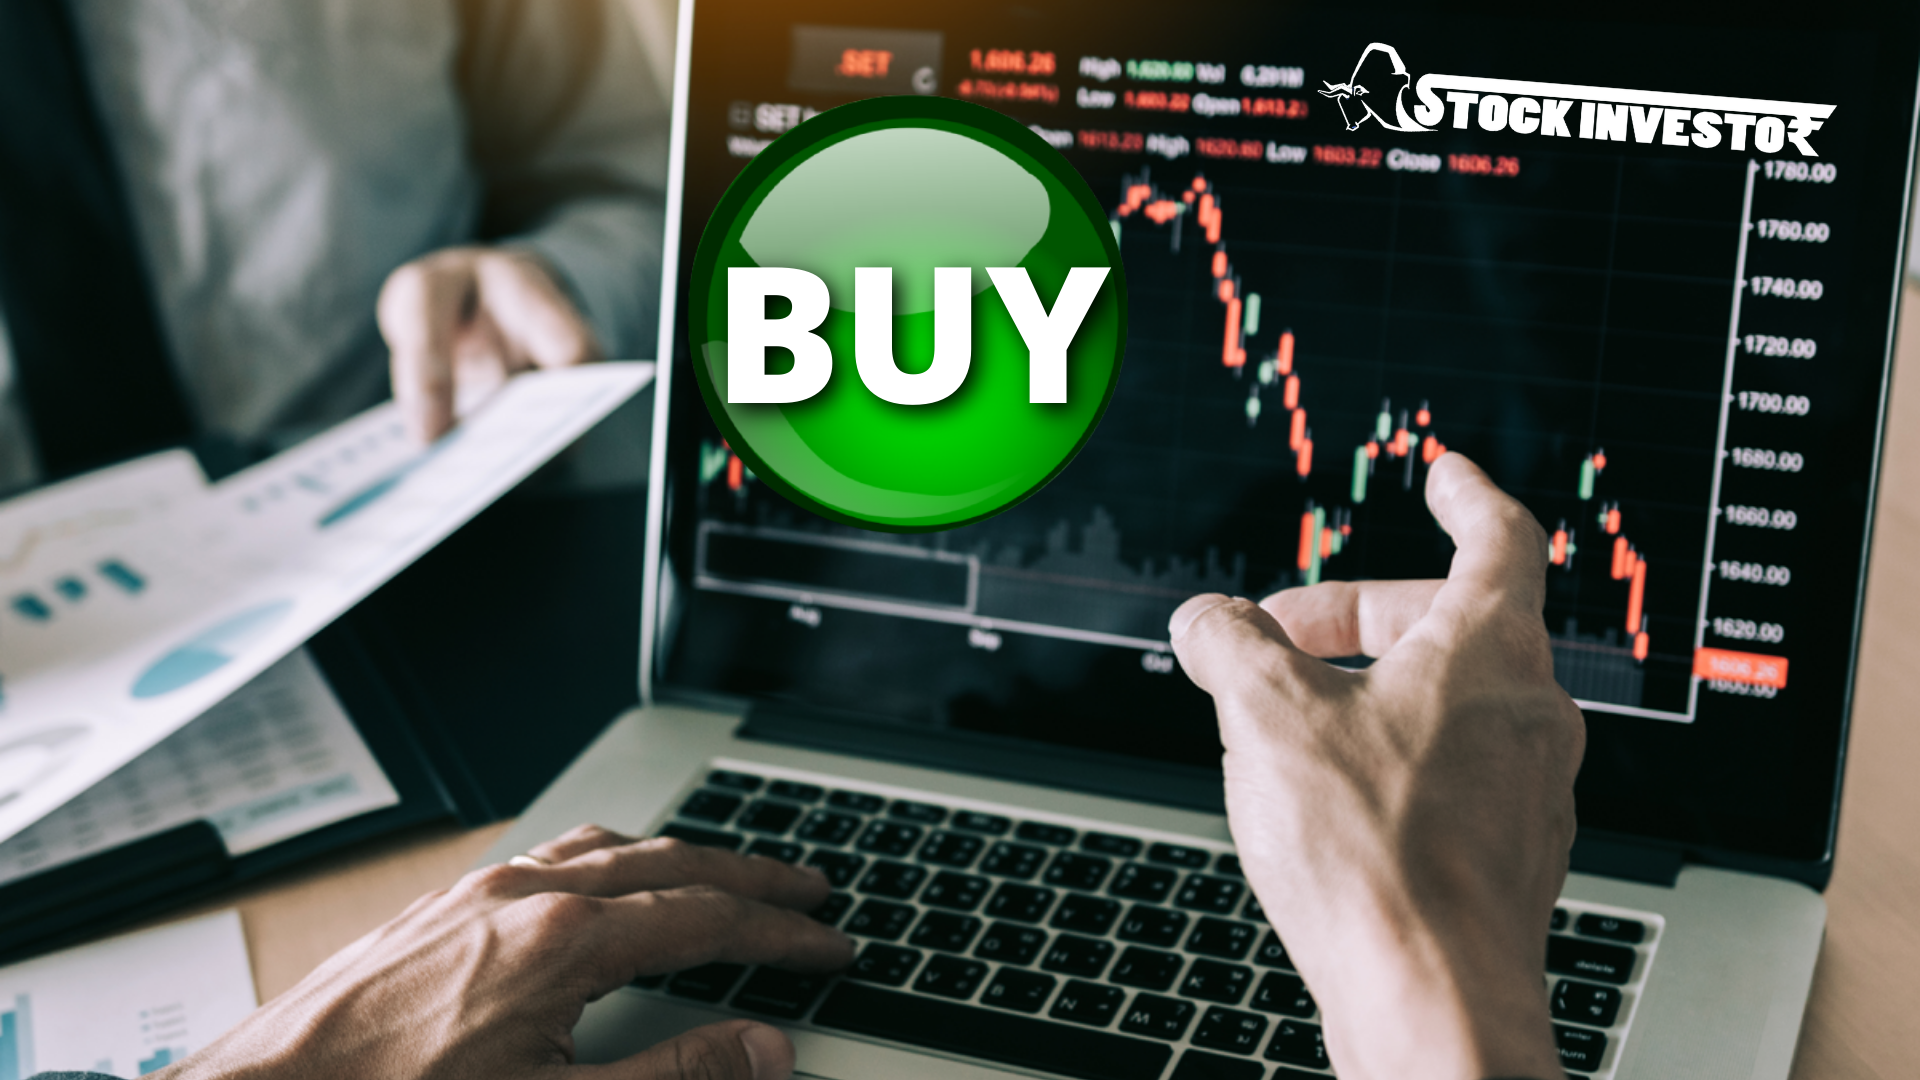 Buy Sonata Software Limited and Larsen & Toubro Limited